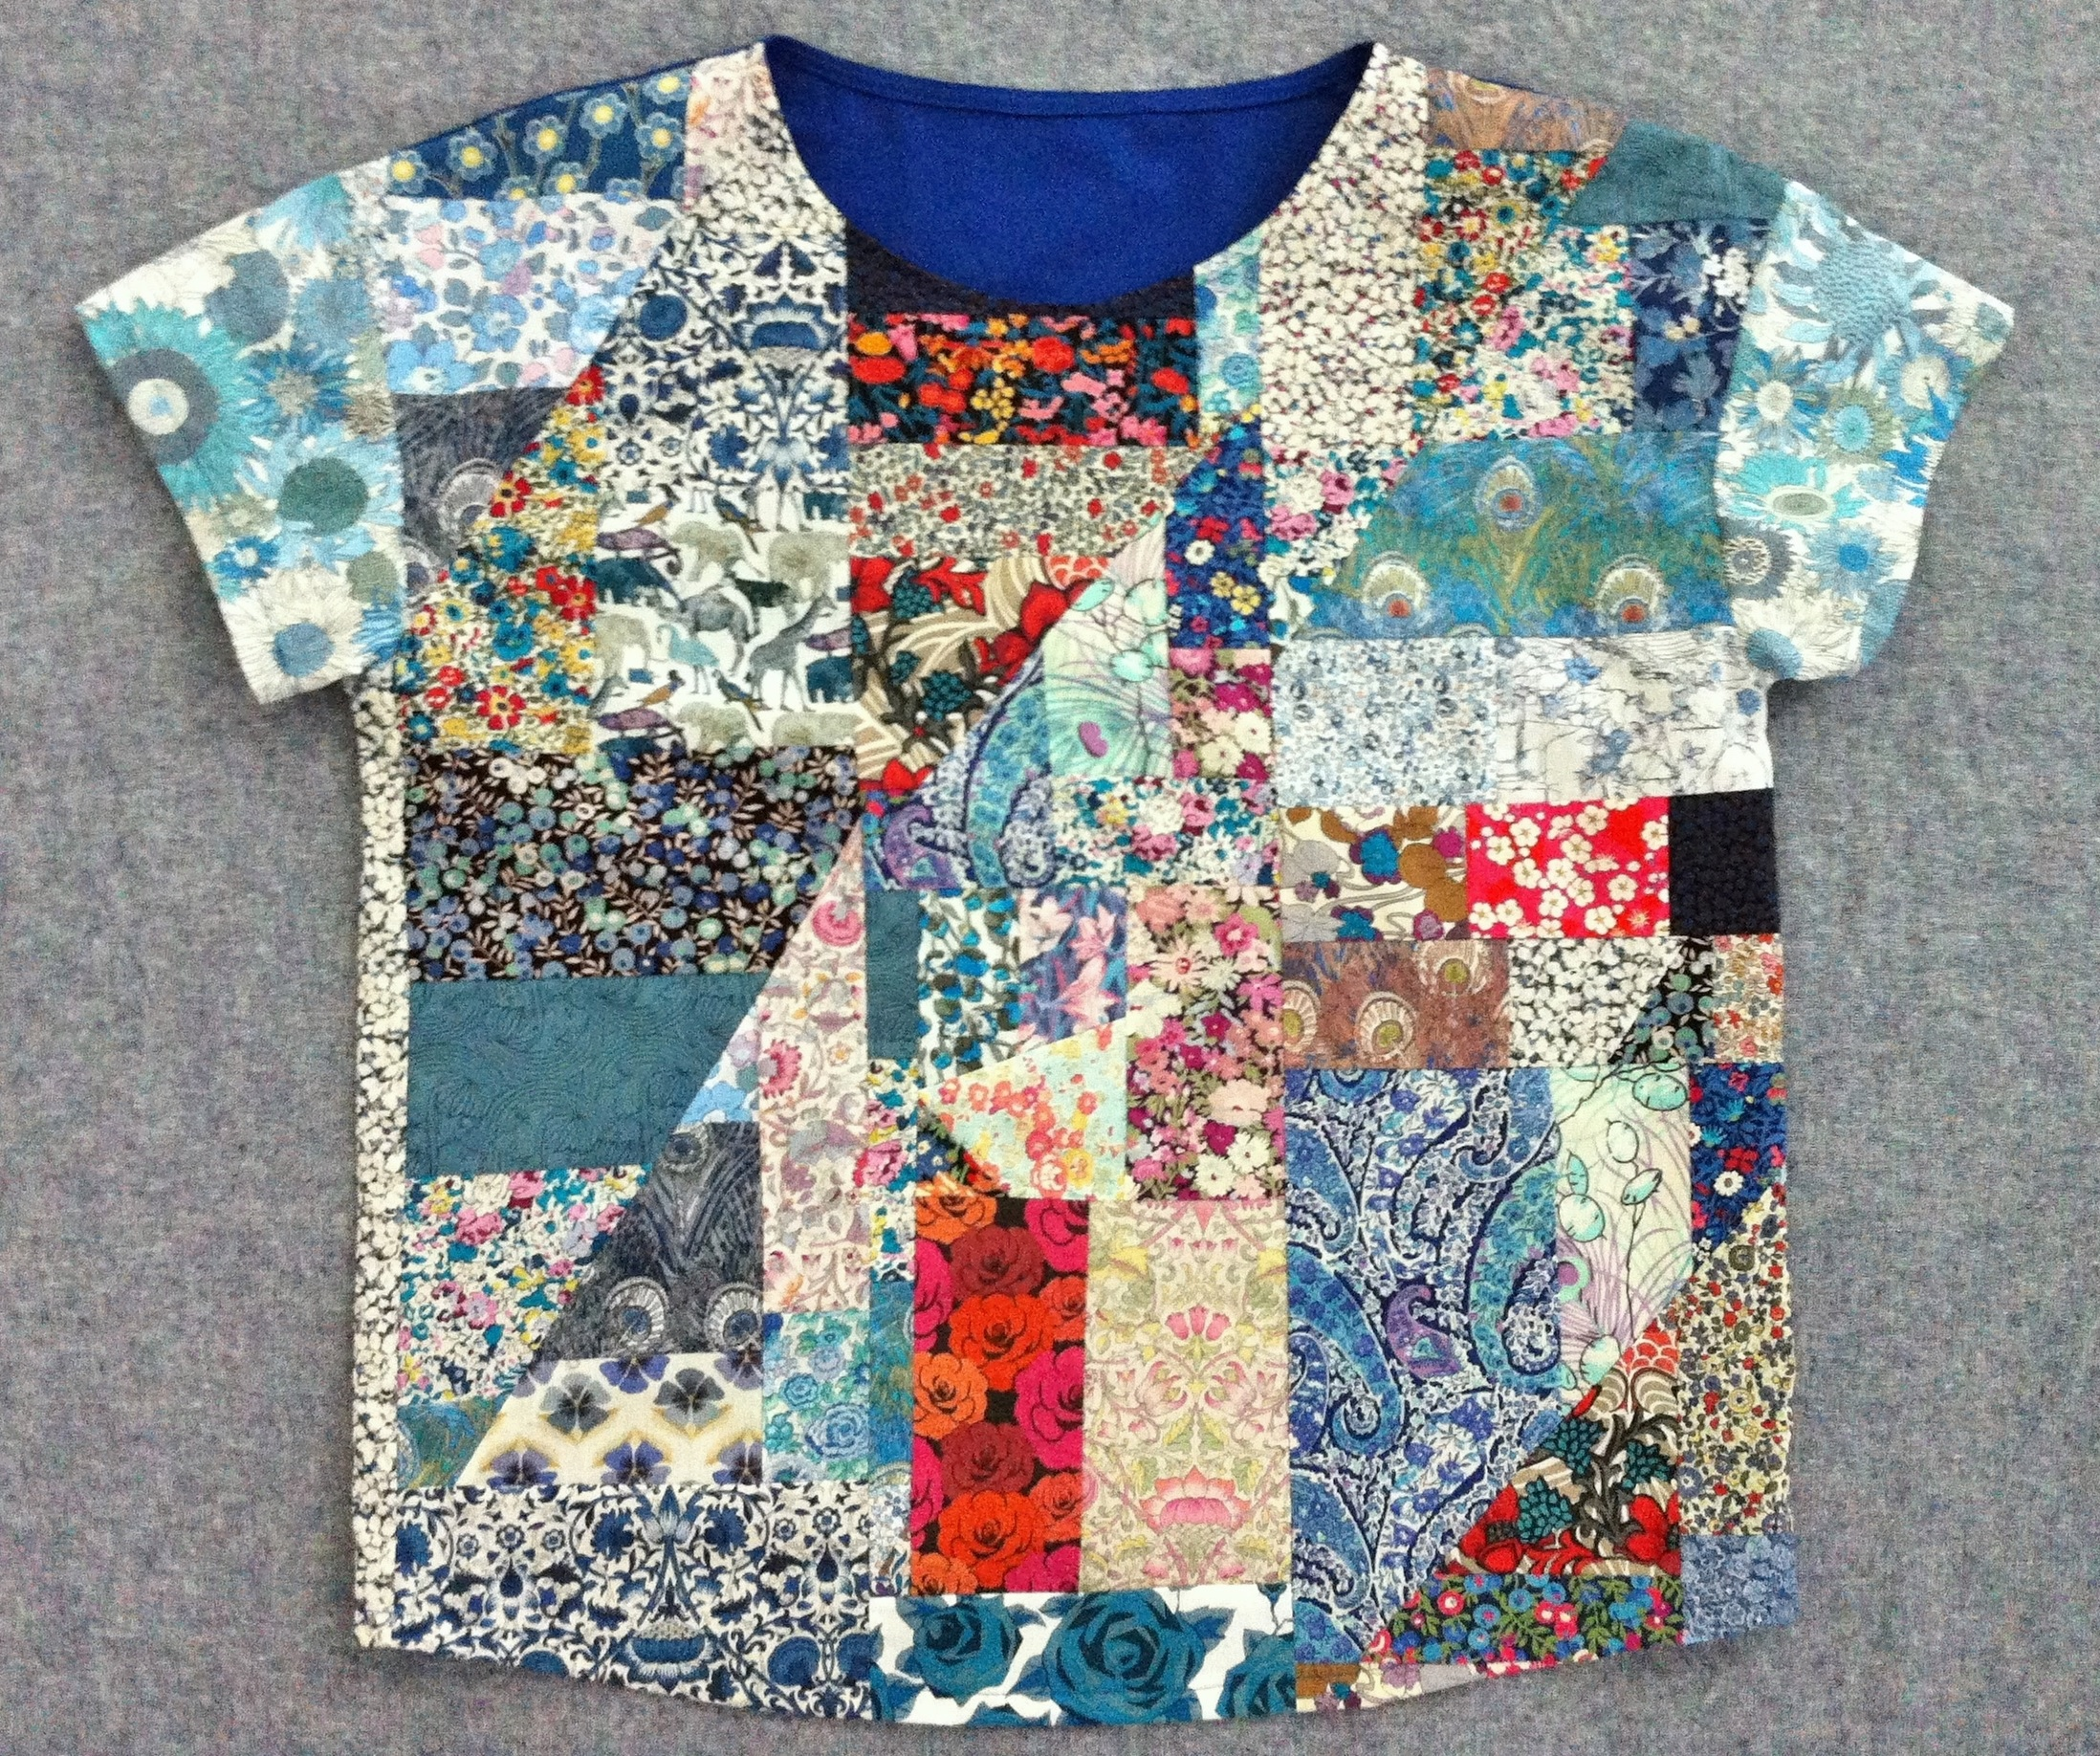 Diy Liberty London Patchwork Top